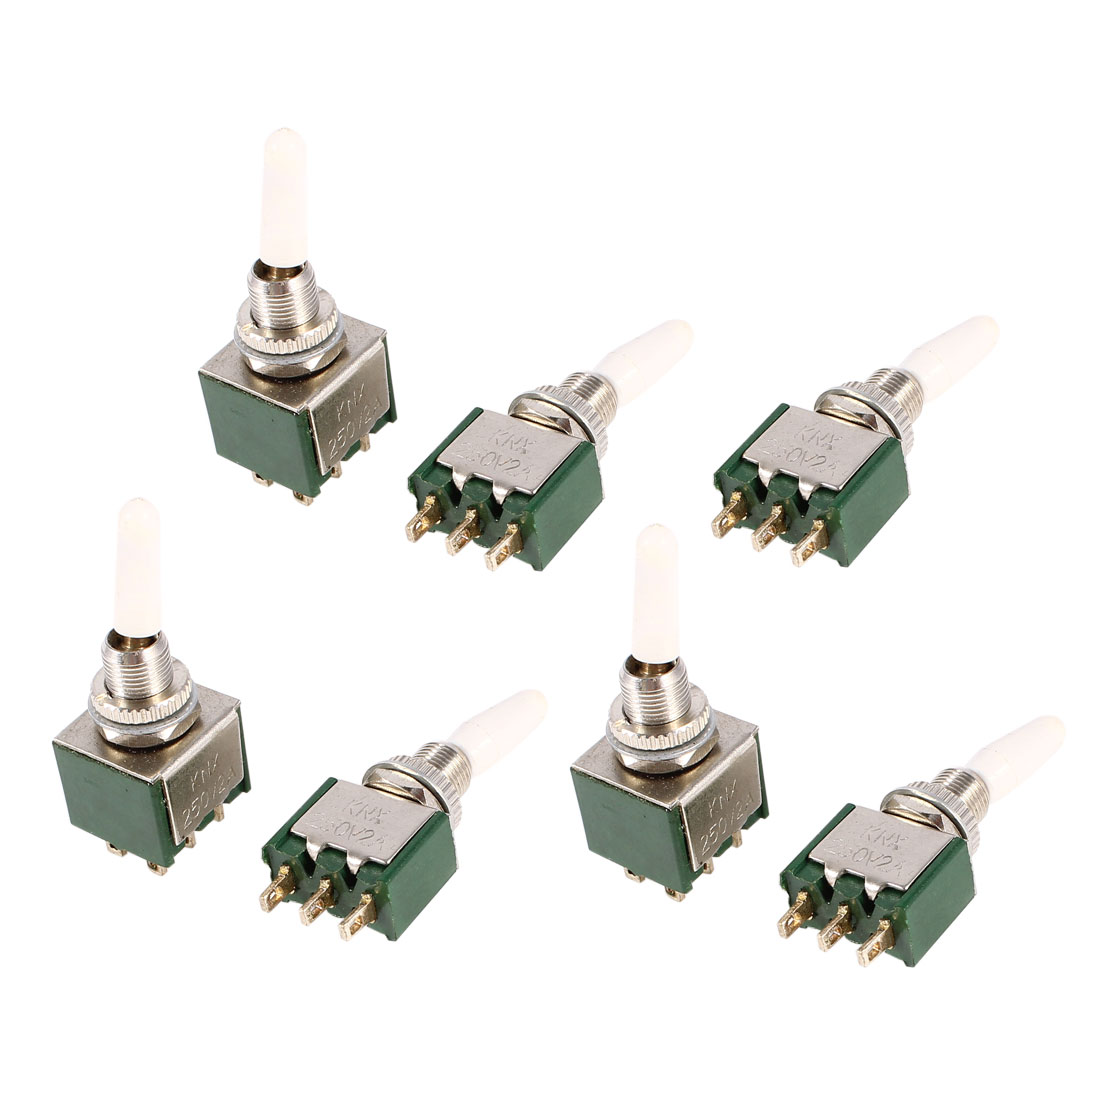 7 Pcs AC250V 2A SPDT 1NO 1NC 3 Pins 2 Positions Toggle Switch Green